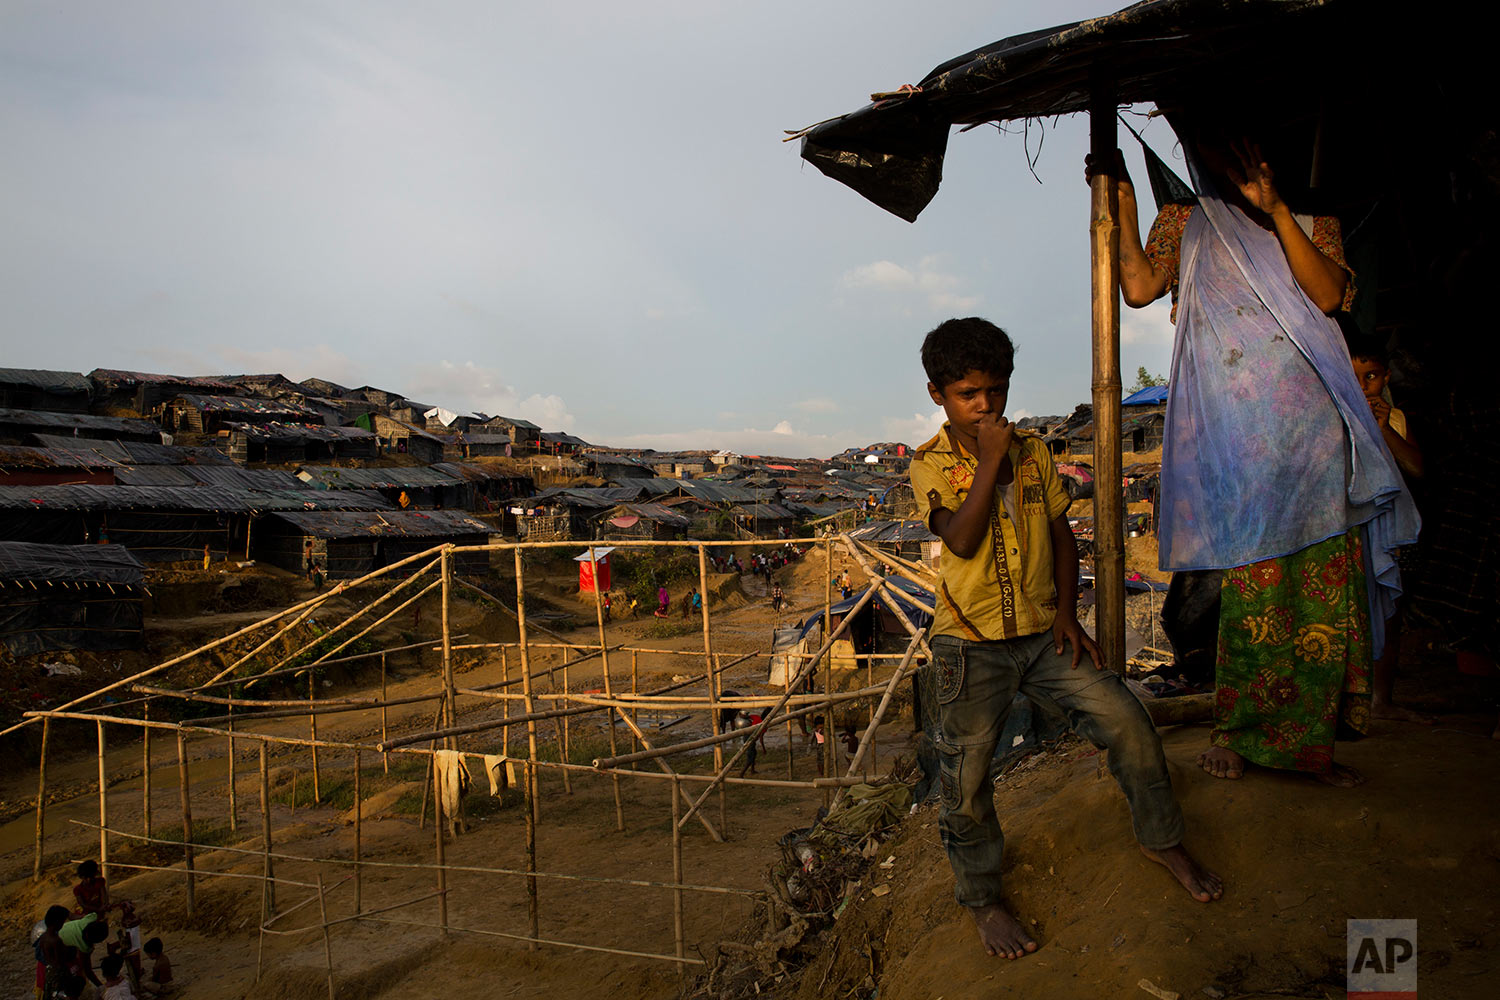 In this Sept. 24, 2017 photo, newly arrived Rohingya Muslims stand next to their new shelters in Balukhali refugee camp, Bangladesh. (AP Photo/Bernat Armangue)